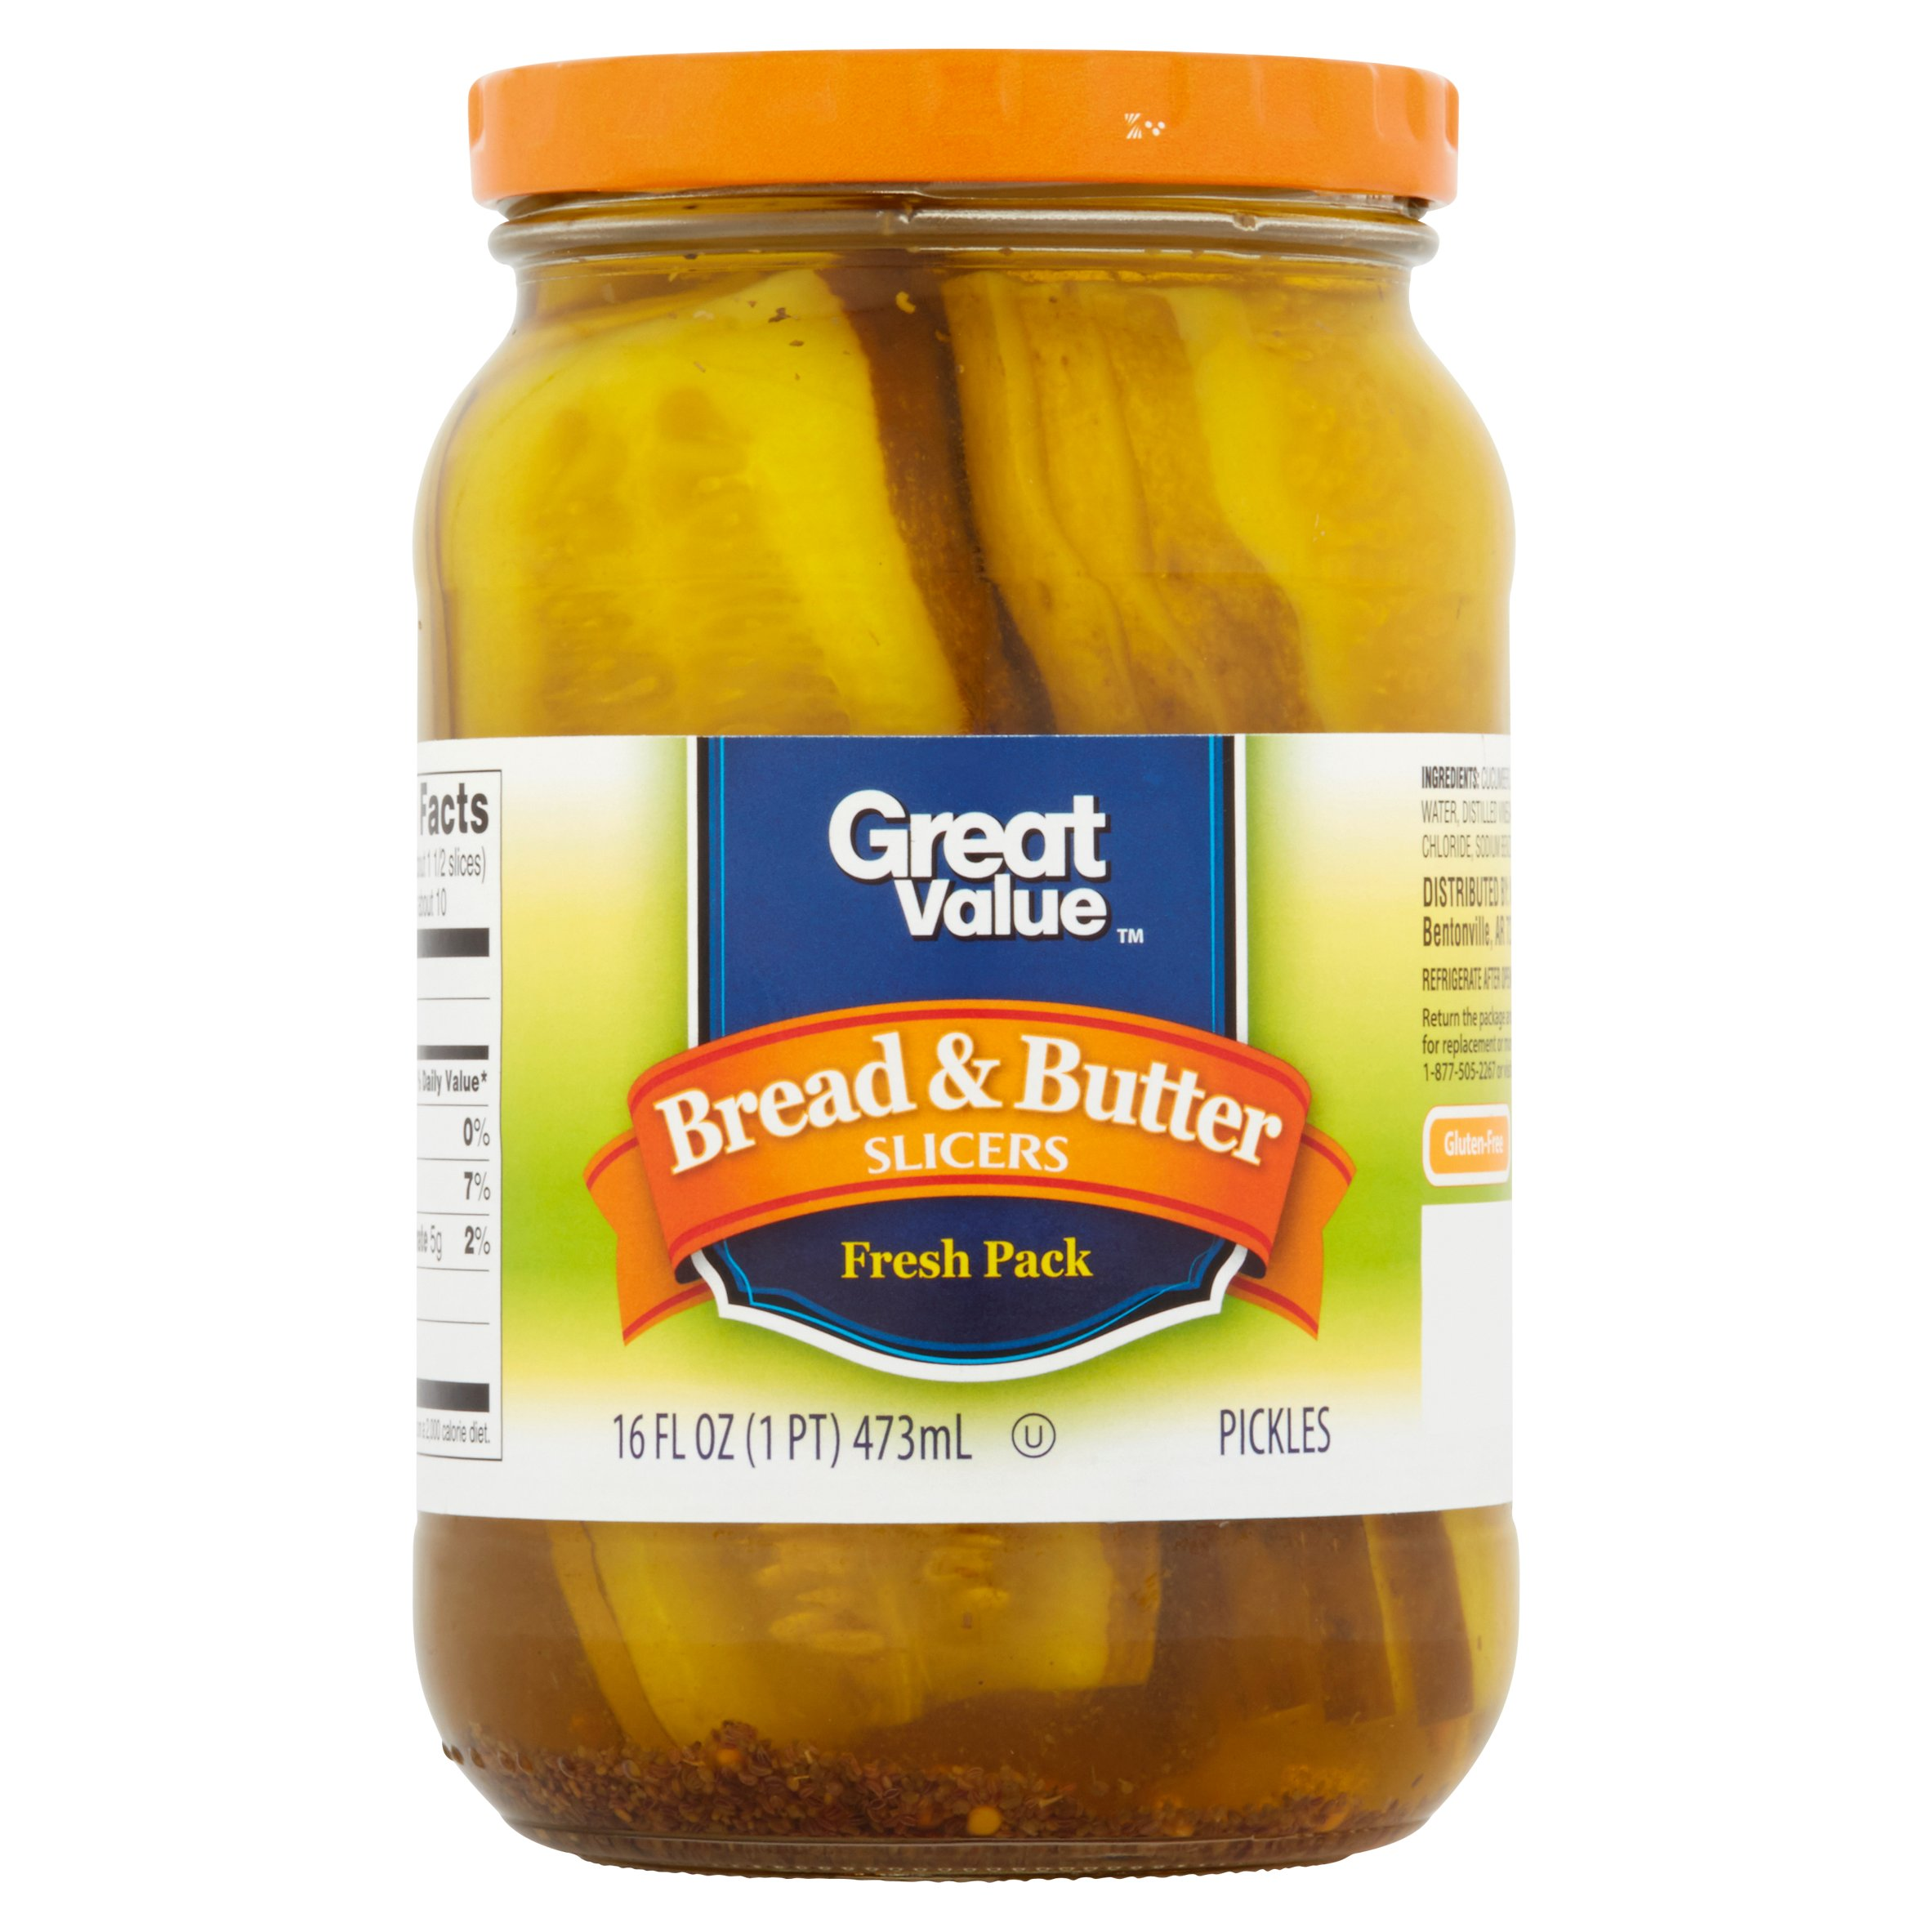 Great Value Bread & Butter Slicers Pickles, 16 fl oz by Wal-Mart Stores, Inc.